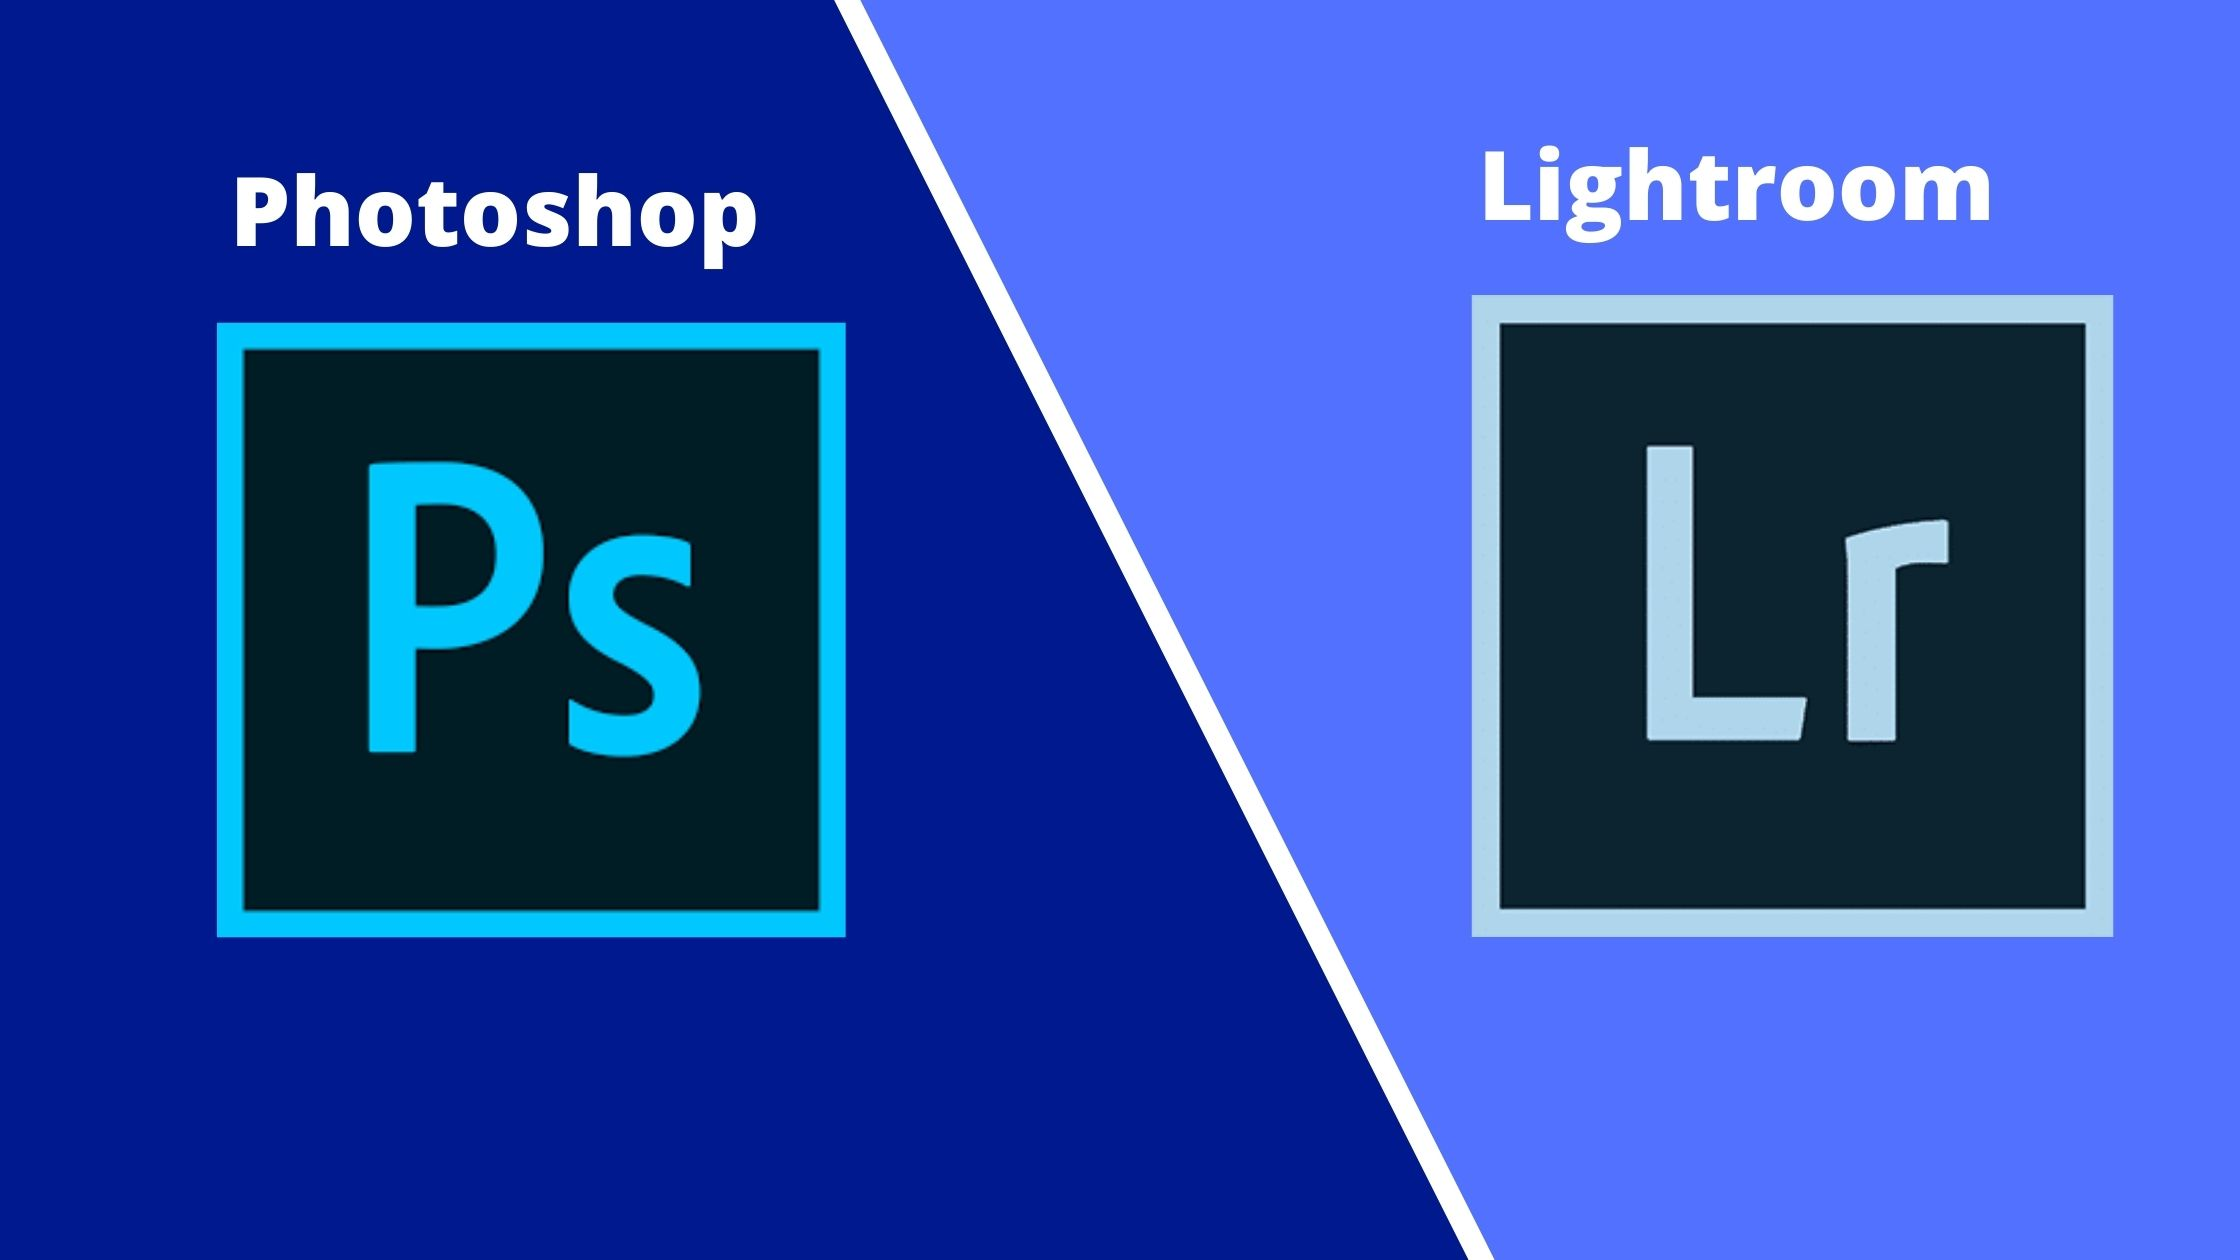 Photoshop vs Lightroom; what is the difference?